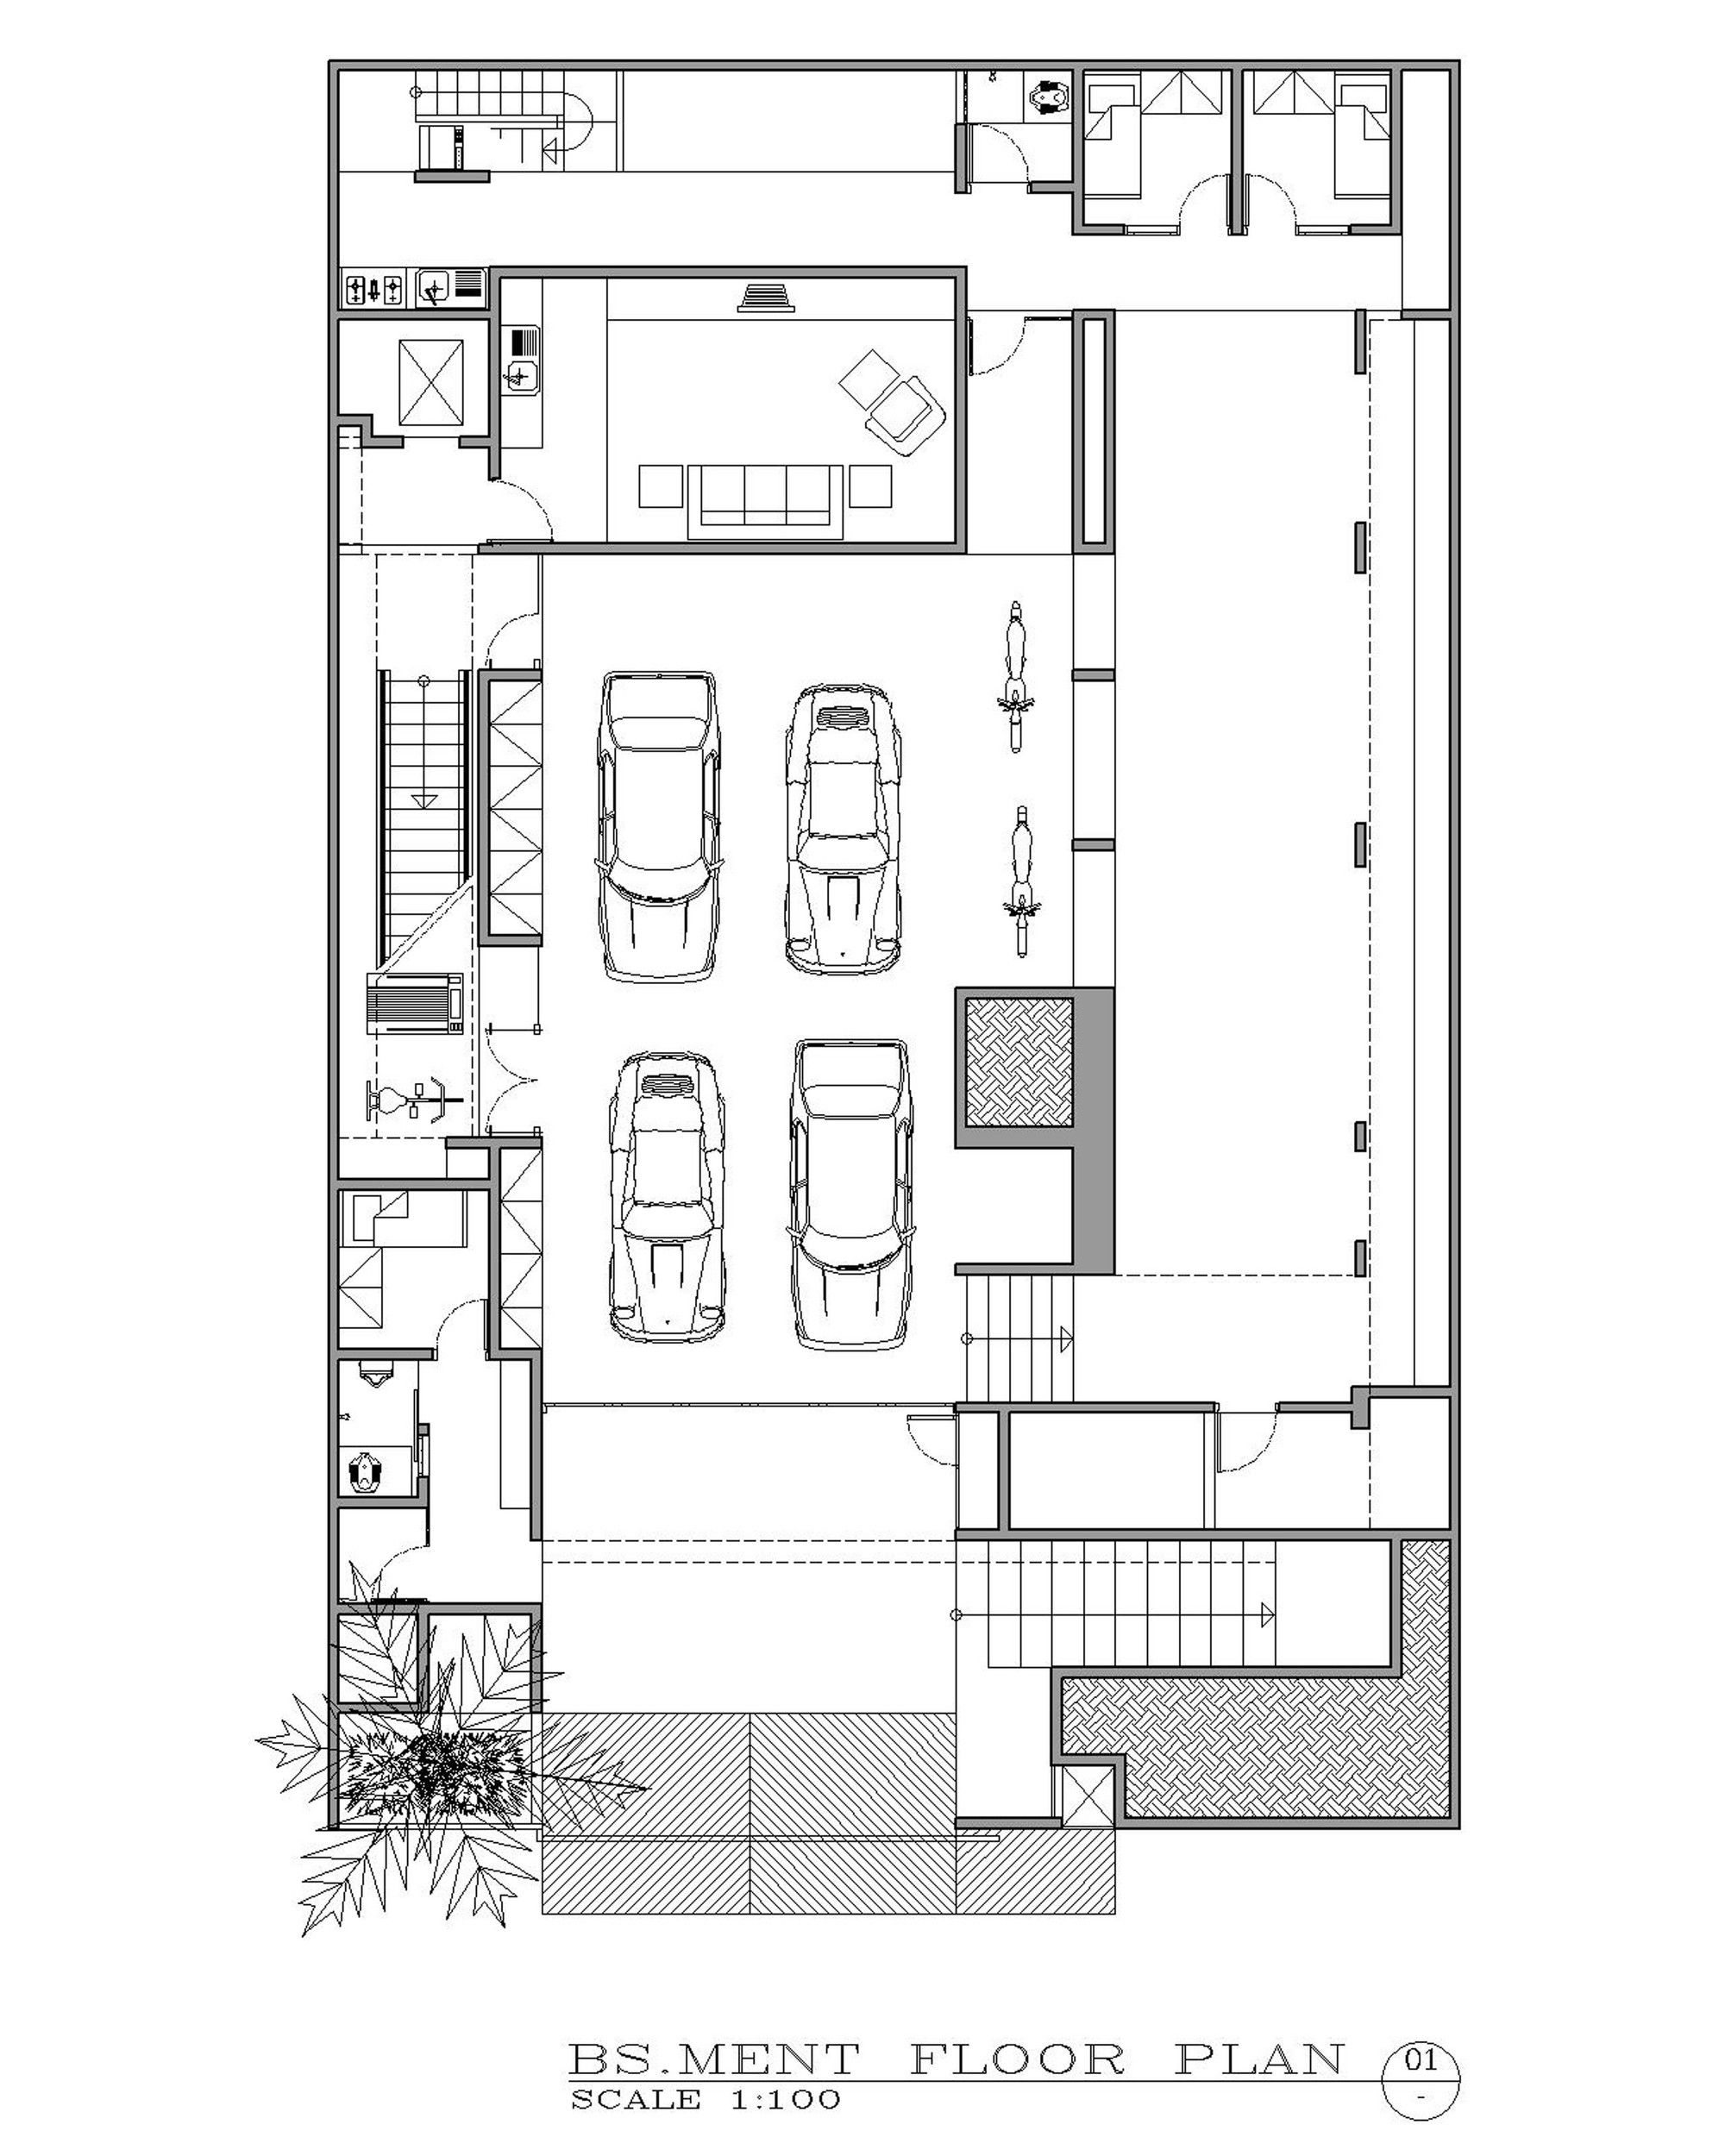 medium resolution of image 16 of 20 from gallery of ben house gp gets architects floor plan